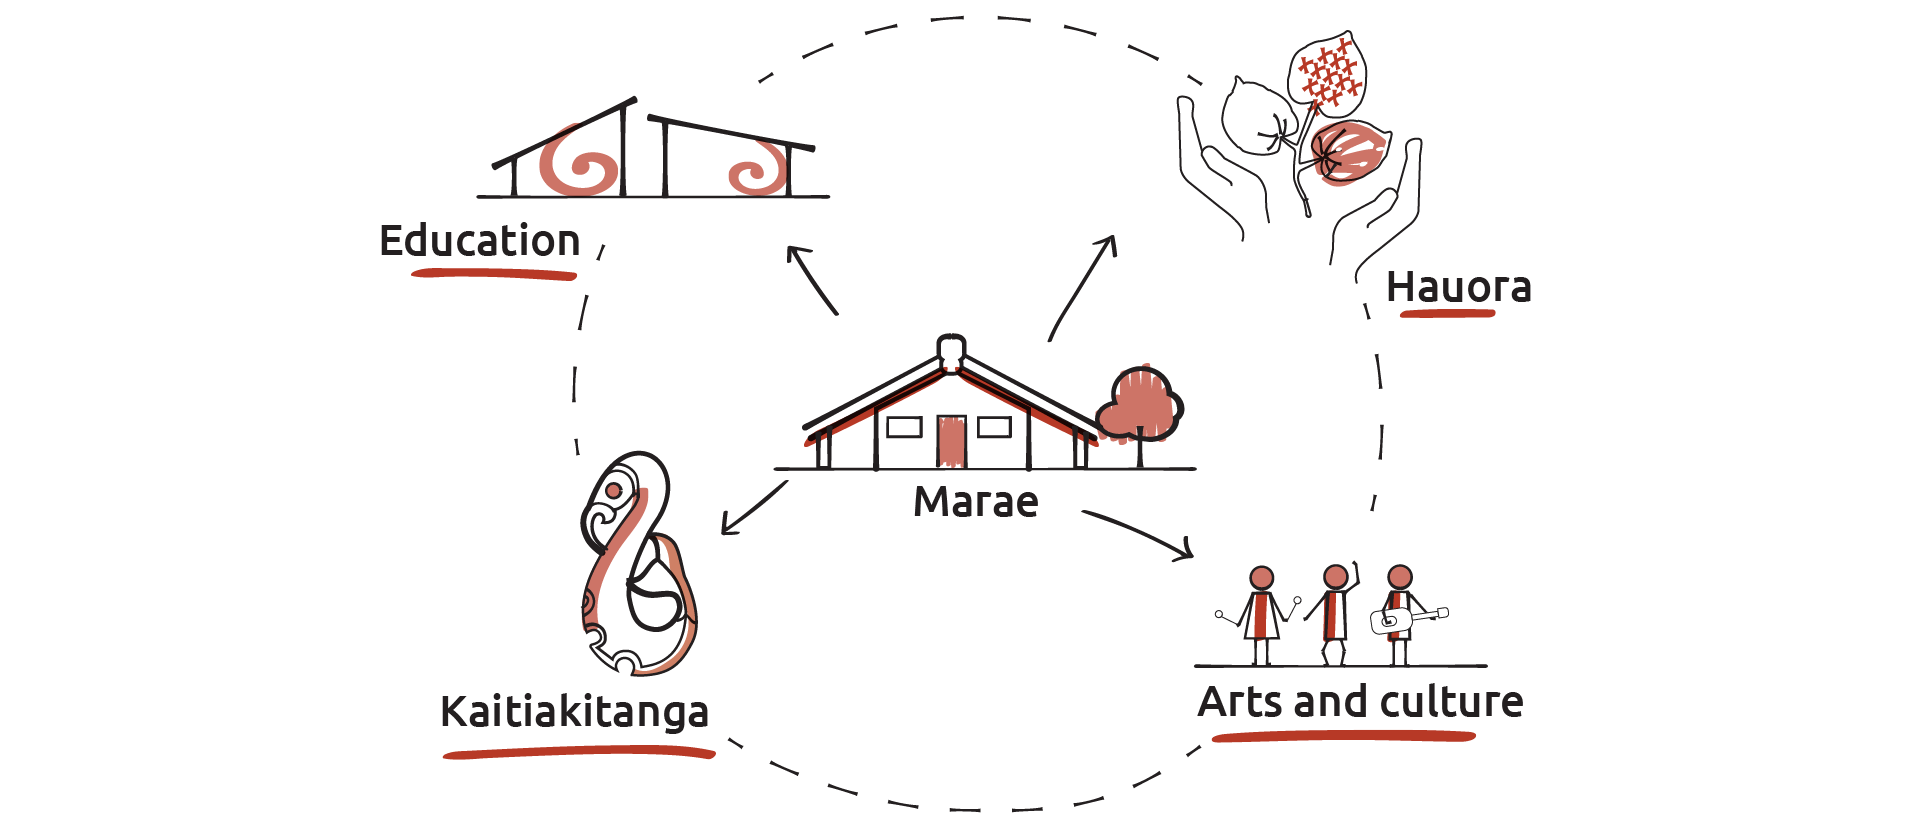 An image showing a range of the services provided by marae – culture, kaitiakitanga, hauora (health) and education.